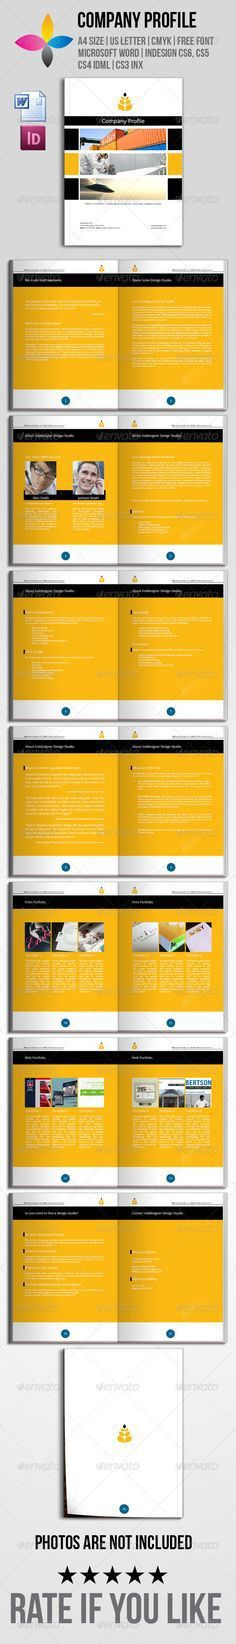 Modern Company Profile | Company profile, Print templates and ...